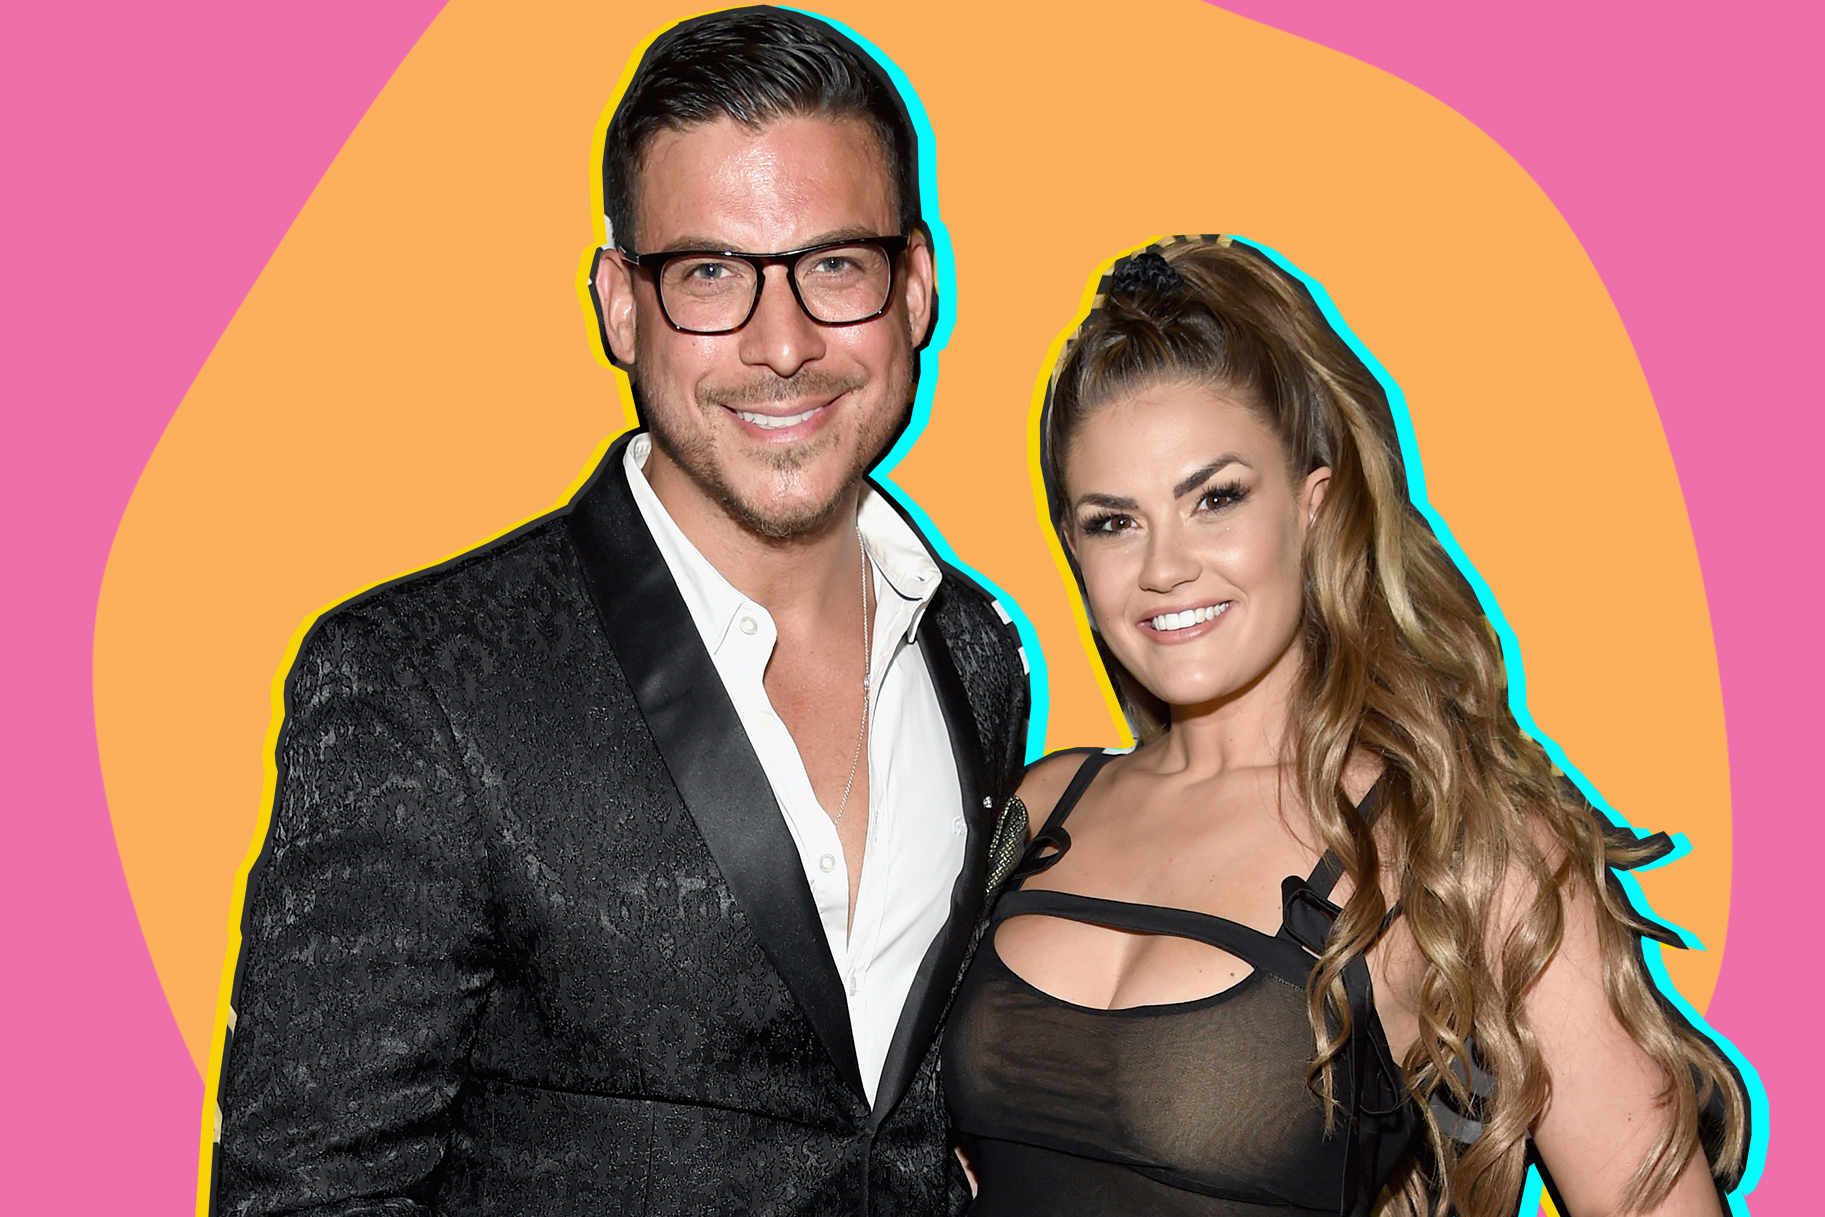 """jax-taylor-shares-a-video-addressing-divorce-rumors-vanderpump-rules-star-declares-his-marriage-is-still-okay"""